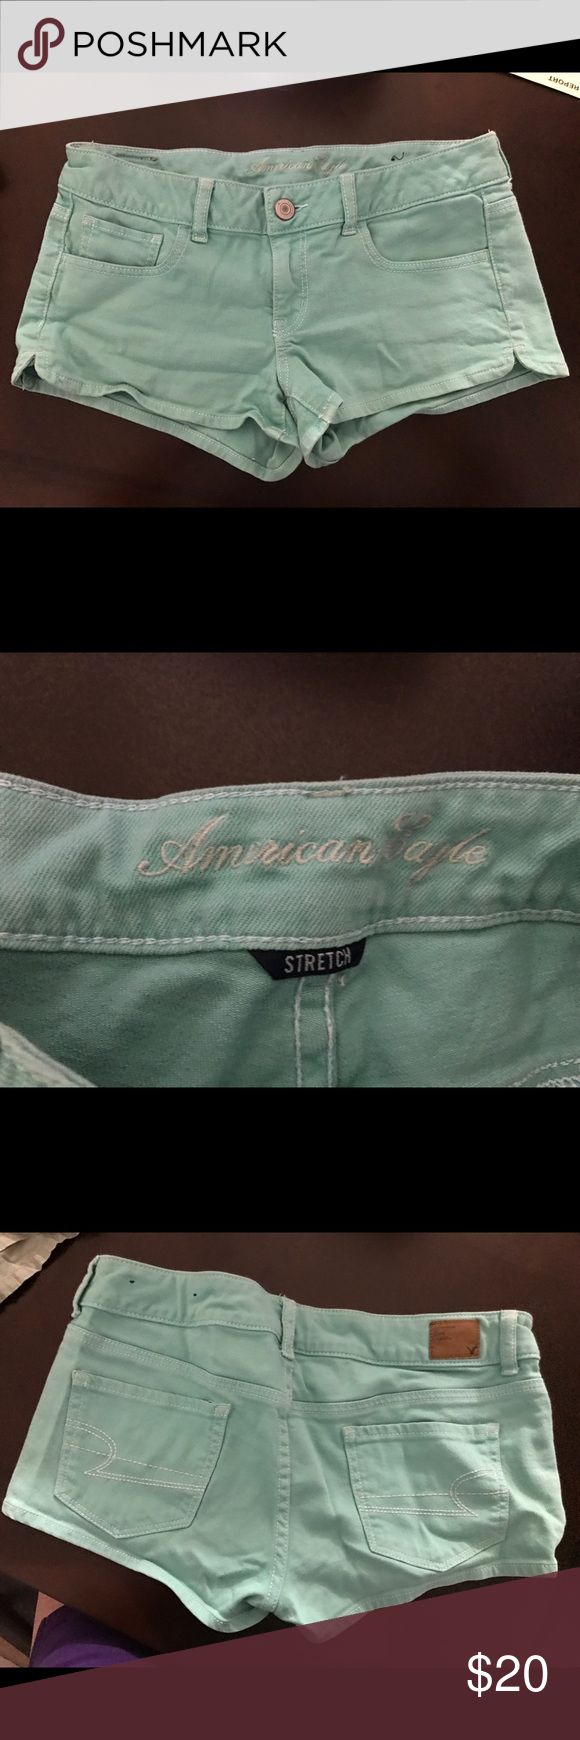 American Eagle mint green shorts Size 8 American Eagle shorts. Make sure to check out my closet for more shorts and clothes. American Eagle Outfitters Shorts